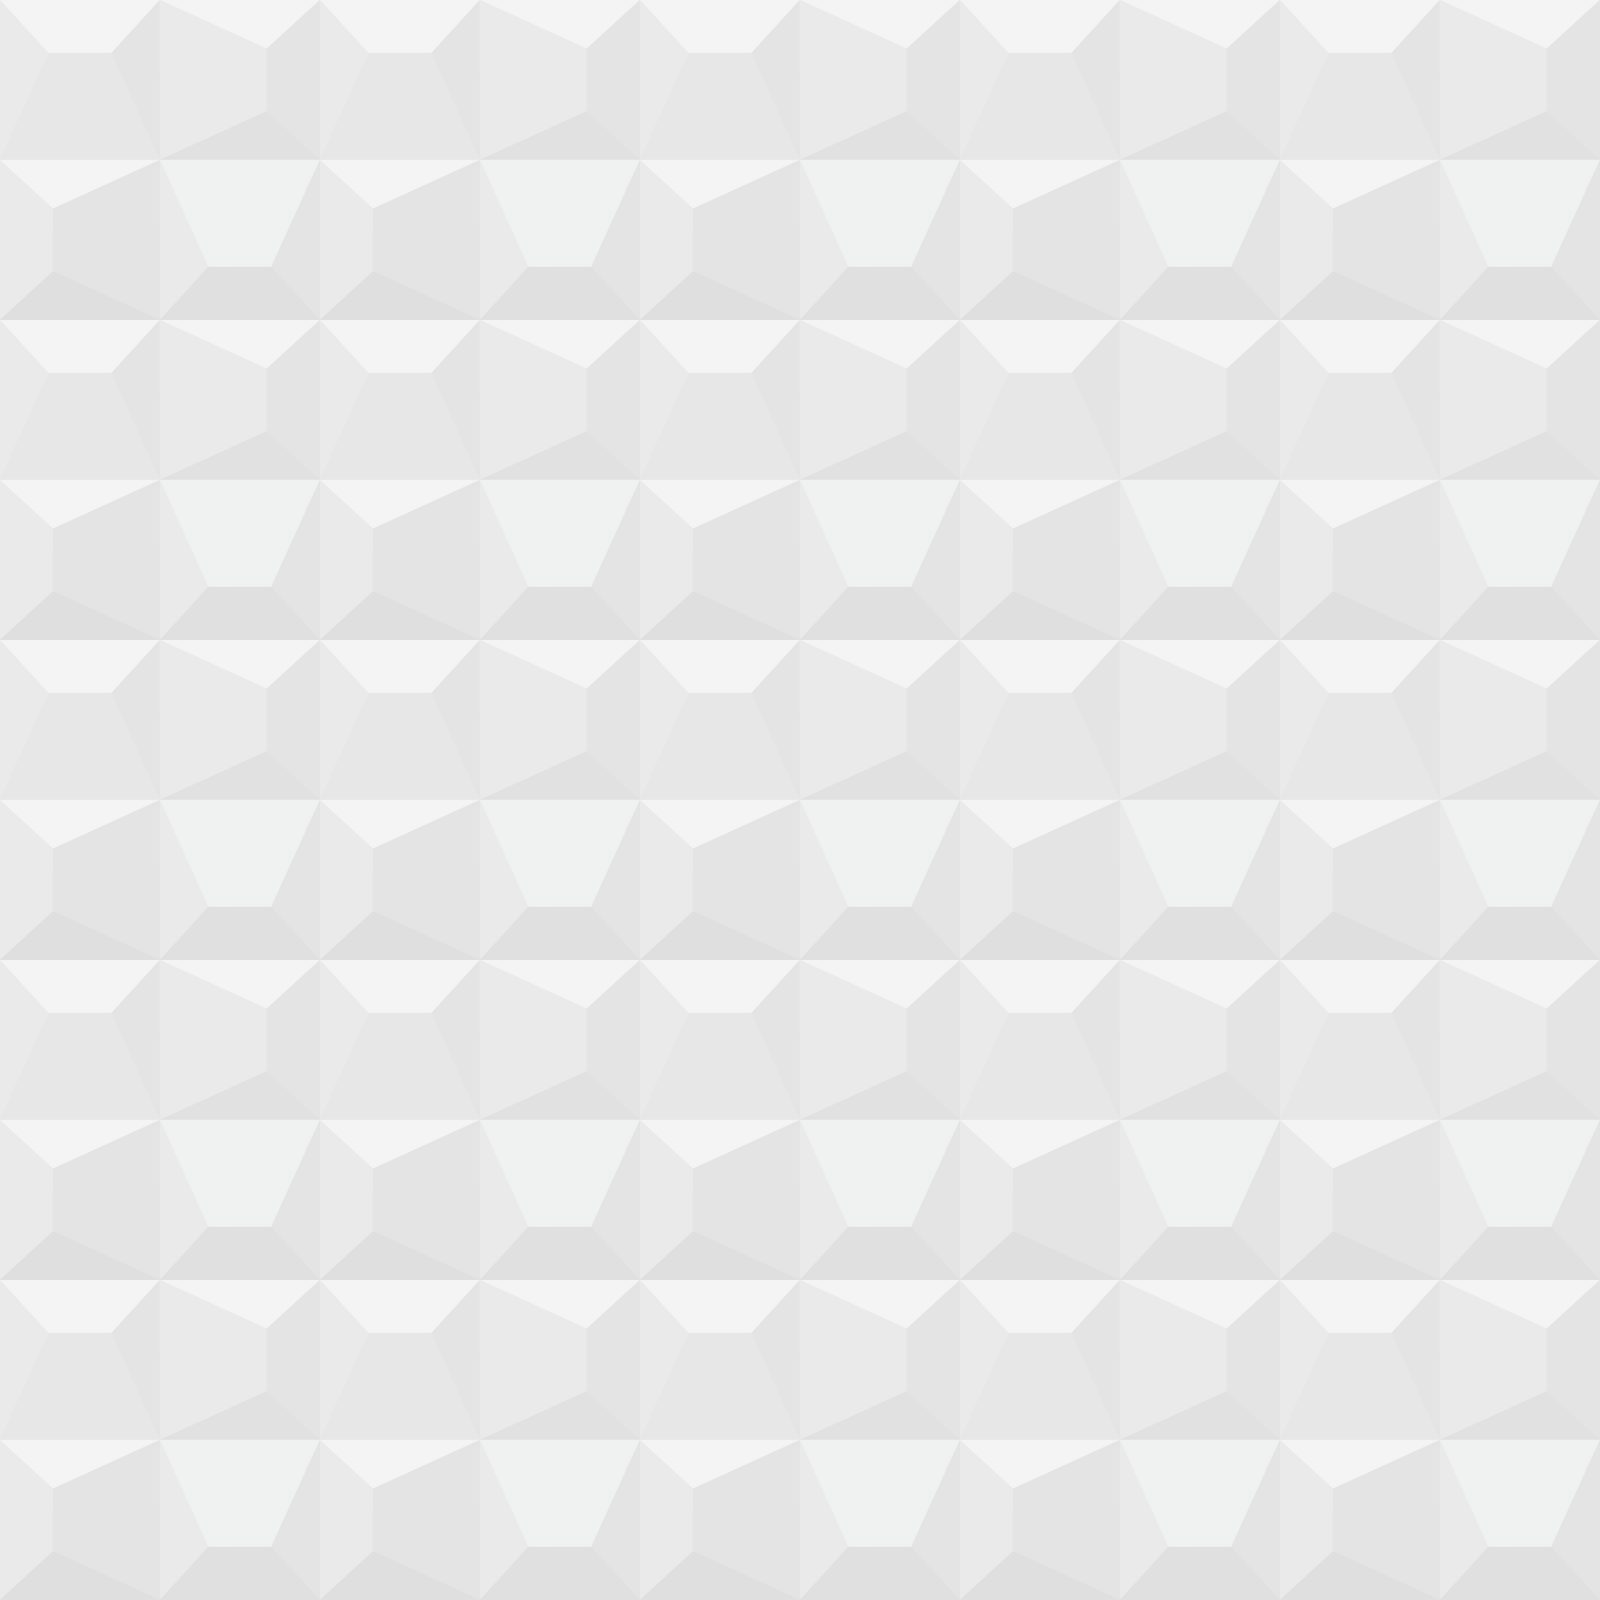 White texture background geometric pattern